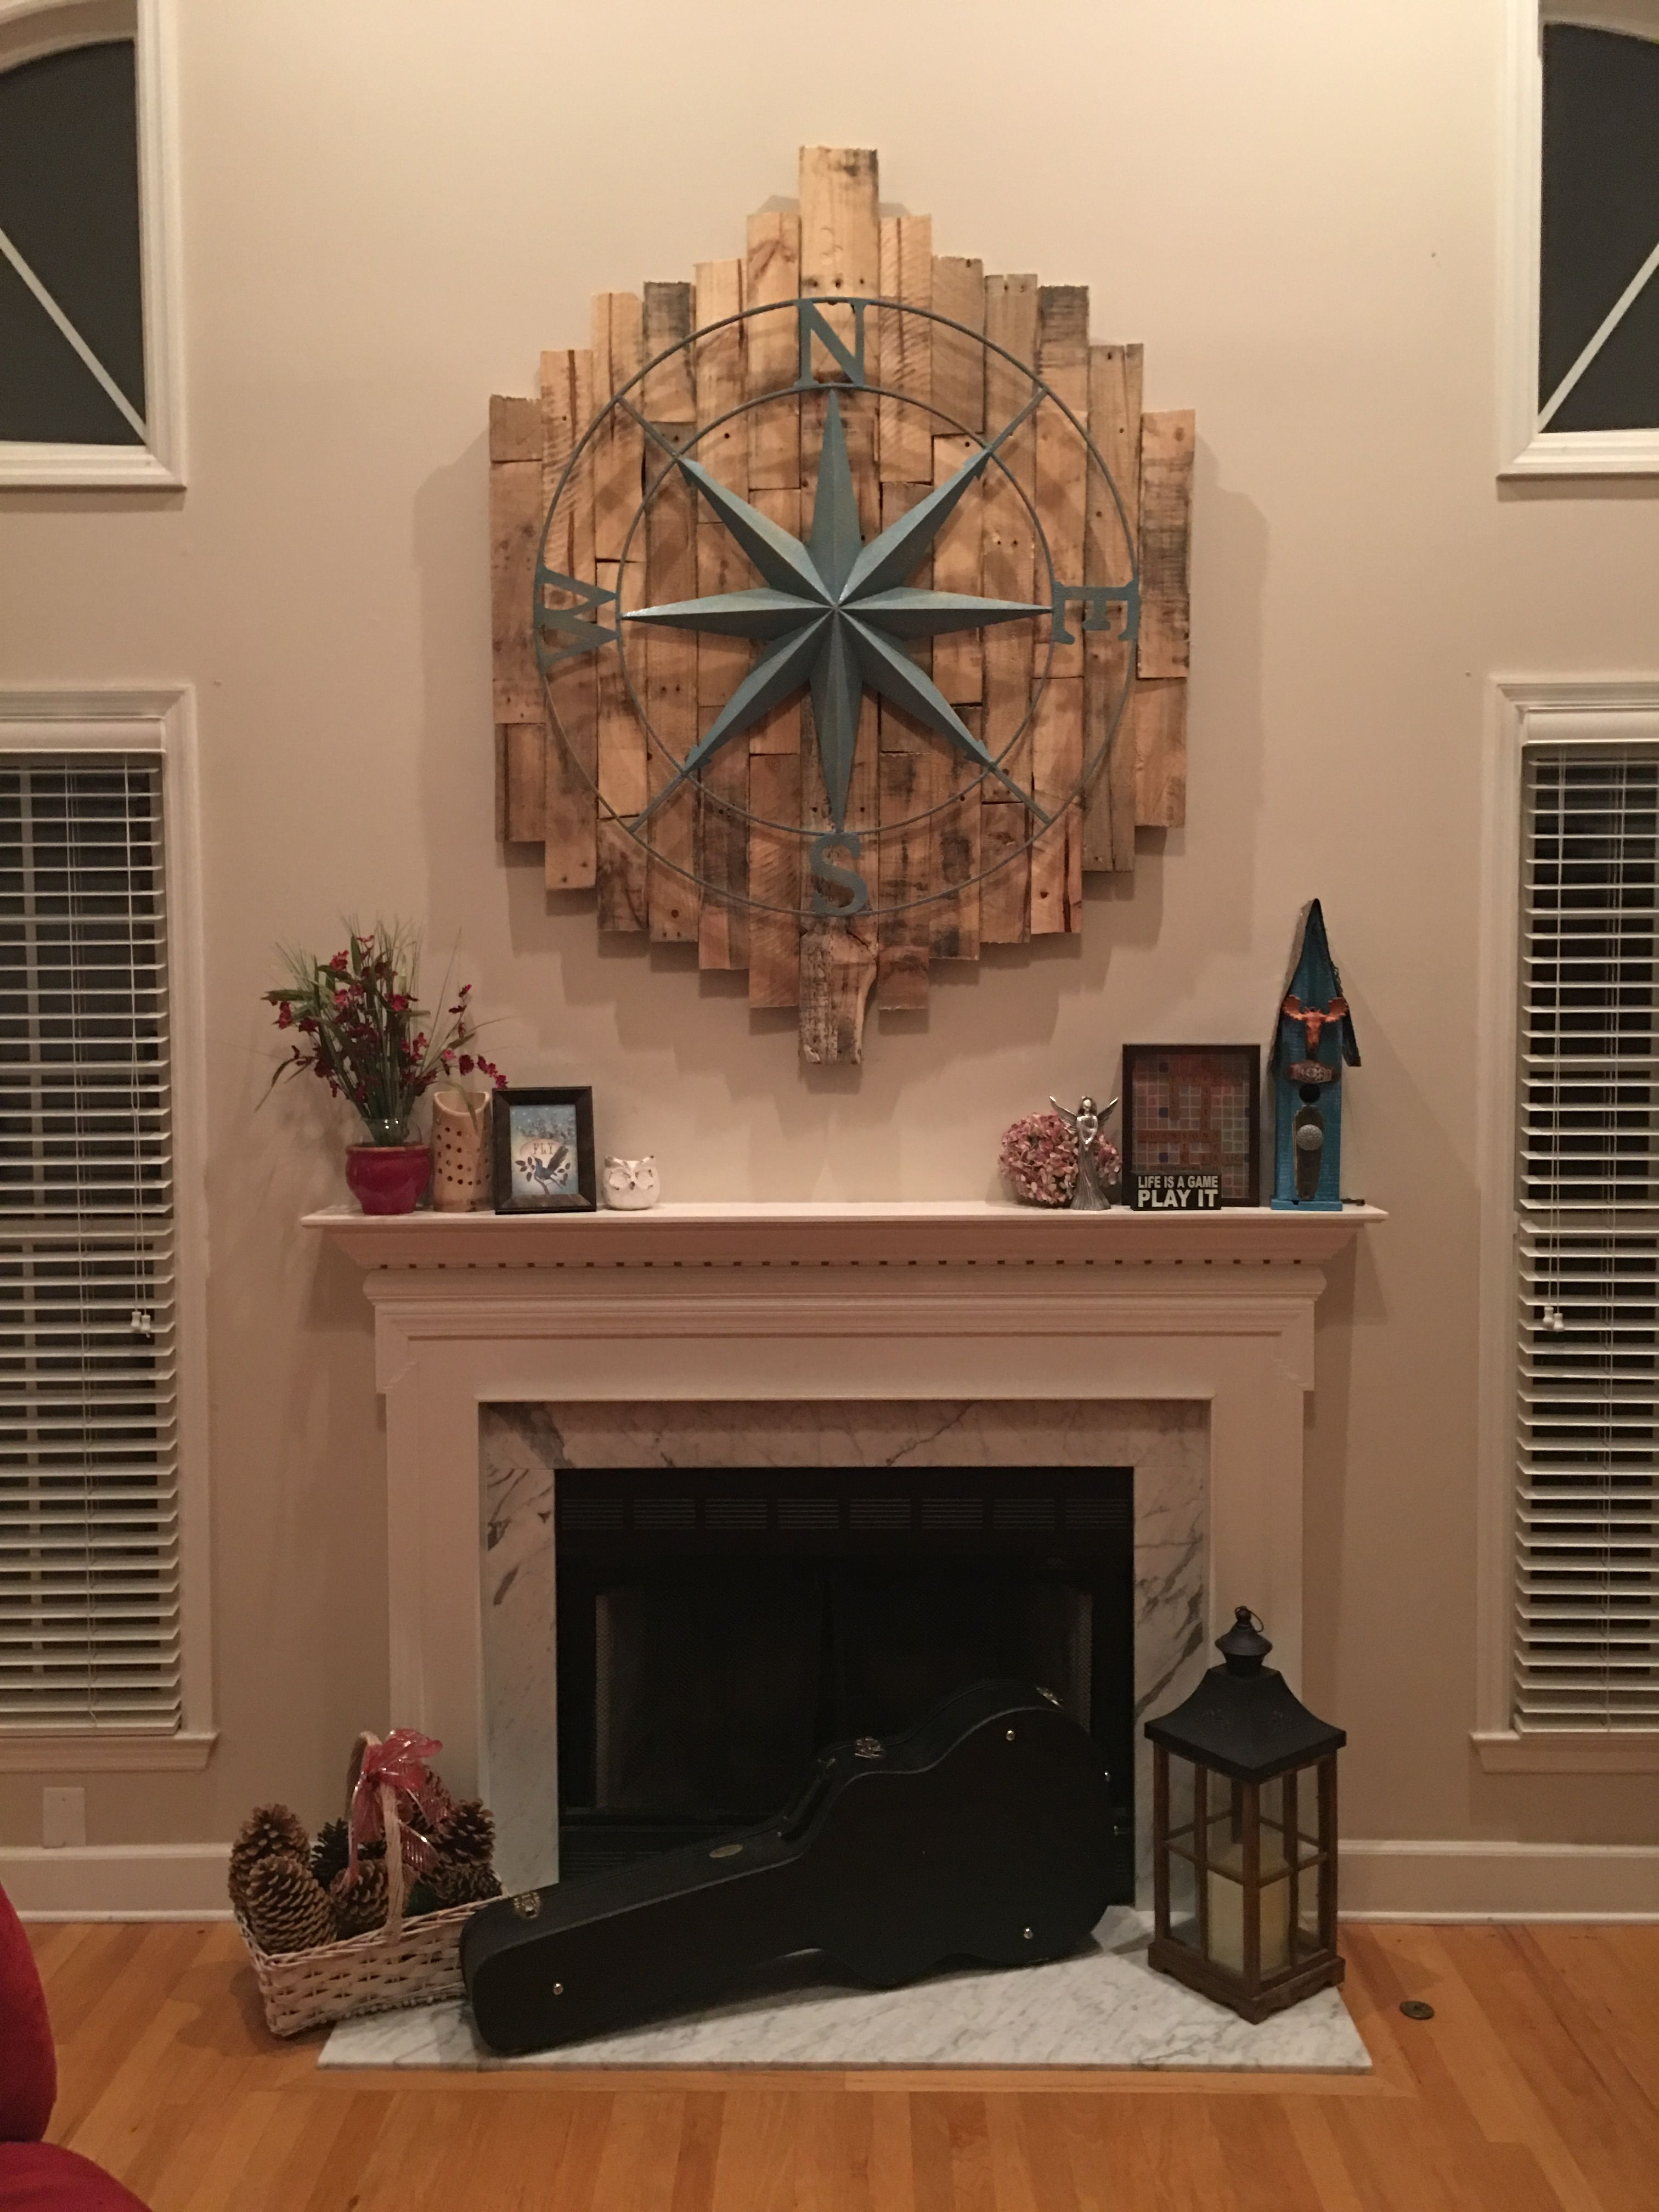 High Ceilings Mantel Fireplace Decorating Large Art Above